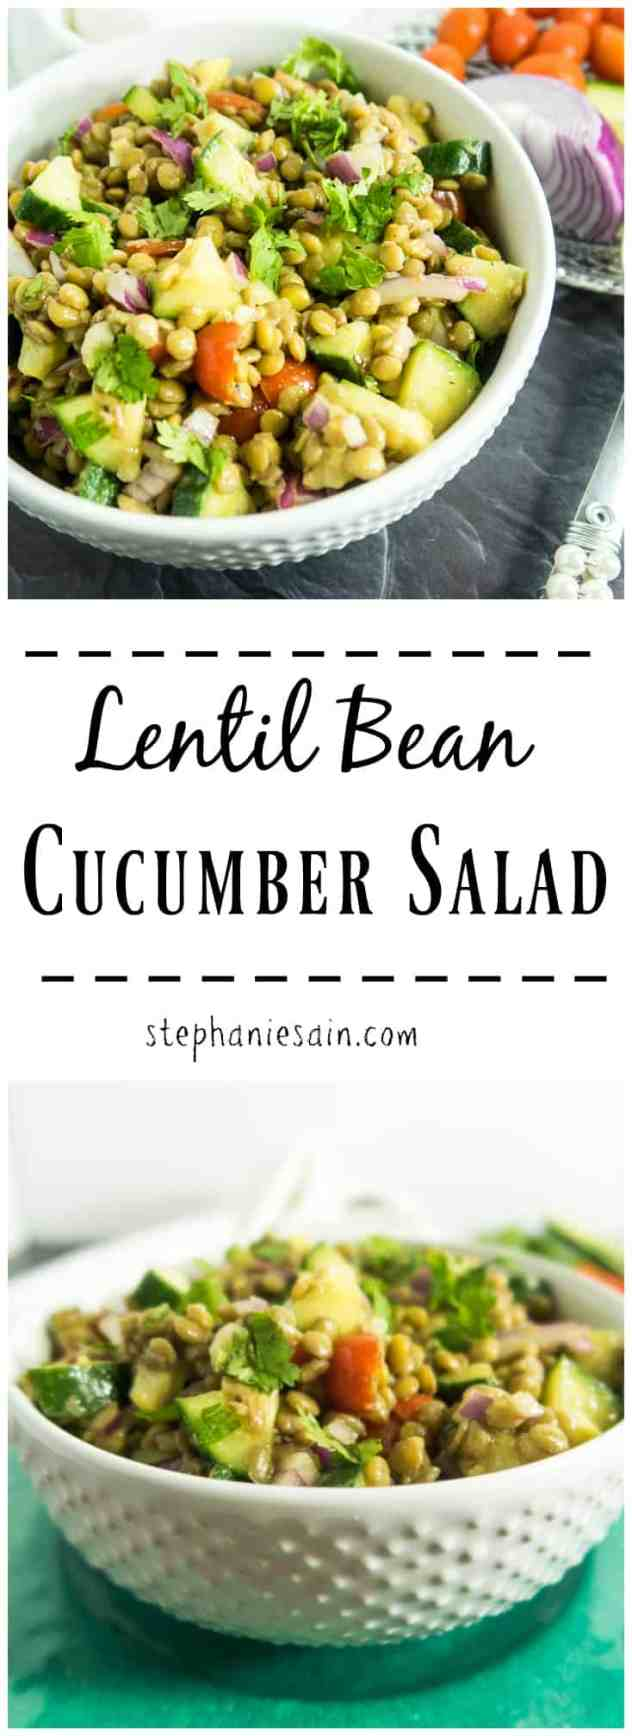 Lentil Bean Cucumber Salad is the perfect make ahead summer salad. Loaded with protein from the lentils , crunchy fresh cucumbers, tomatoes and a light vinaigrette. Vegan & Gluten Free.